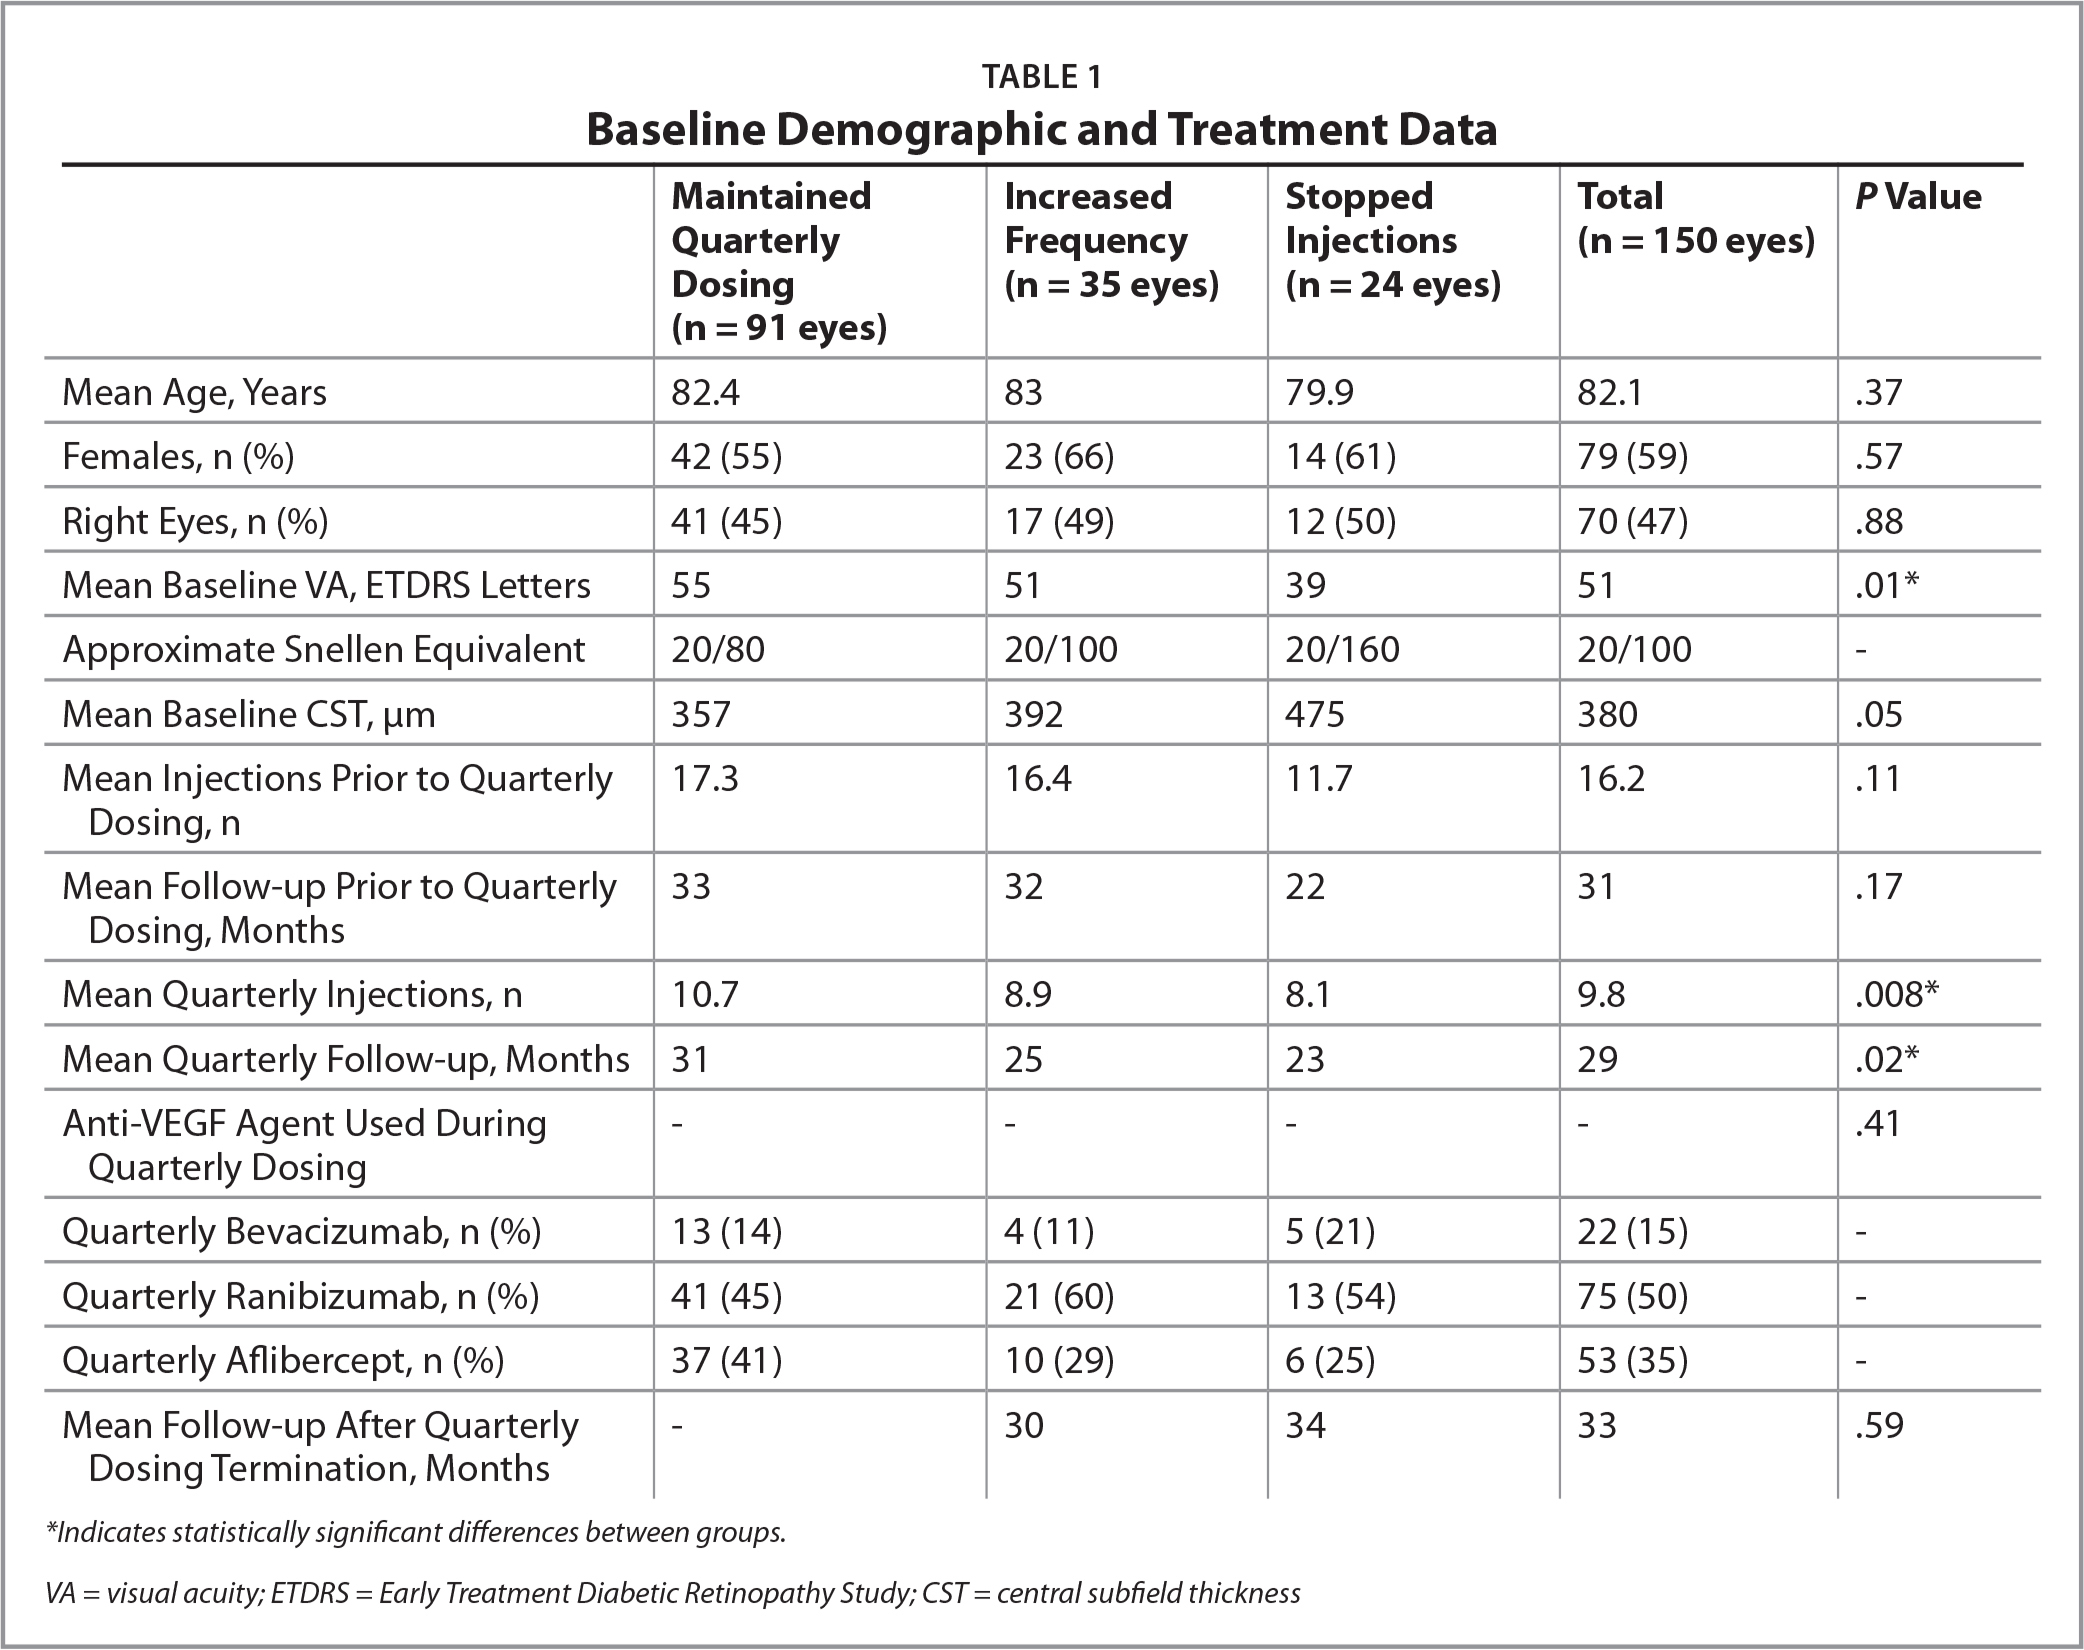 Baseline Demographic and Treatment Data